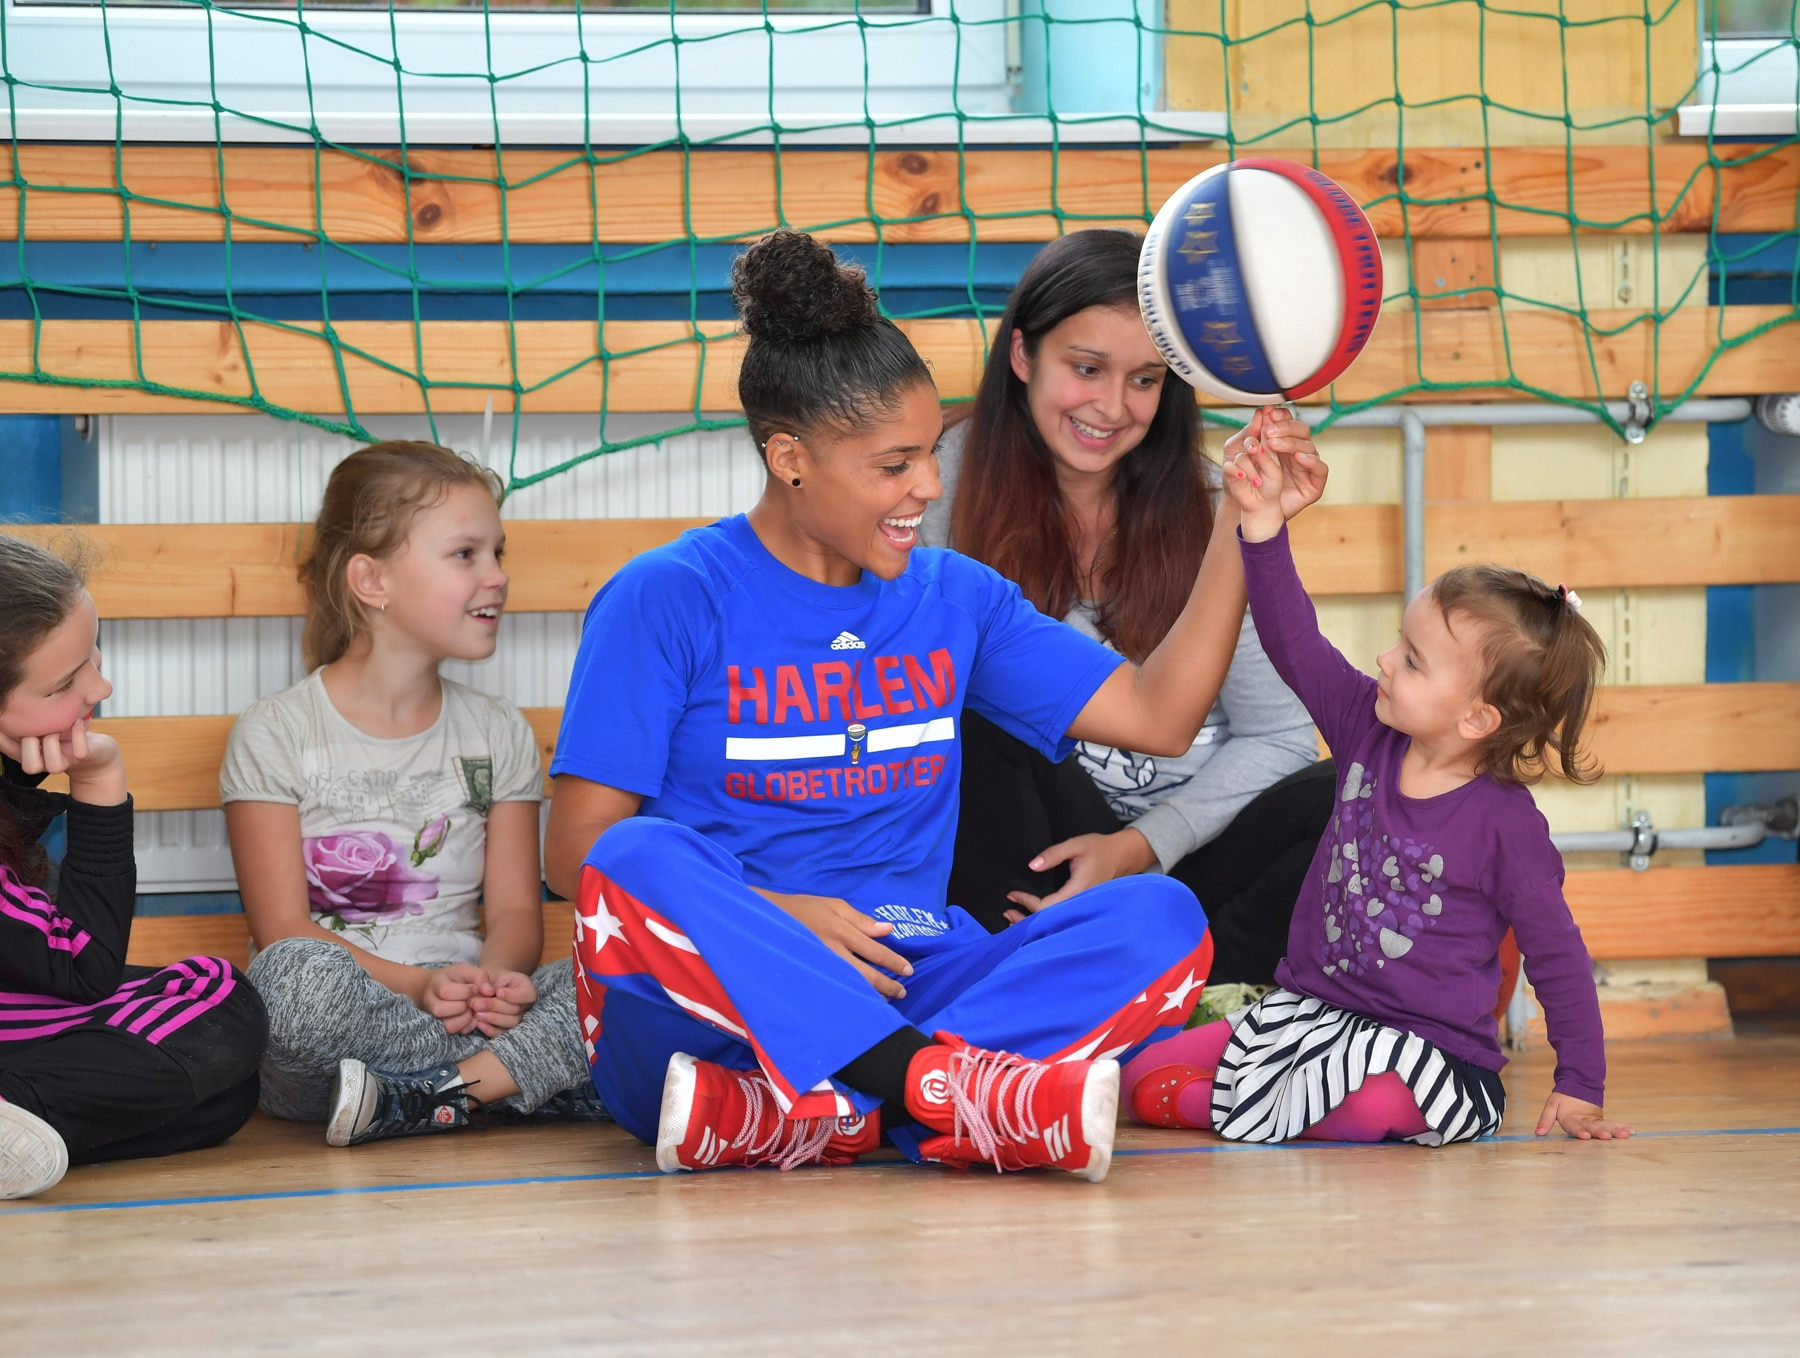 Basketball player sitting on floor with children, spinning a basketball on a young girl's finger (© Brett Meister/Harlem Globetrotters)